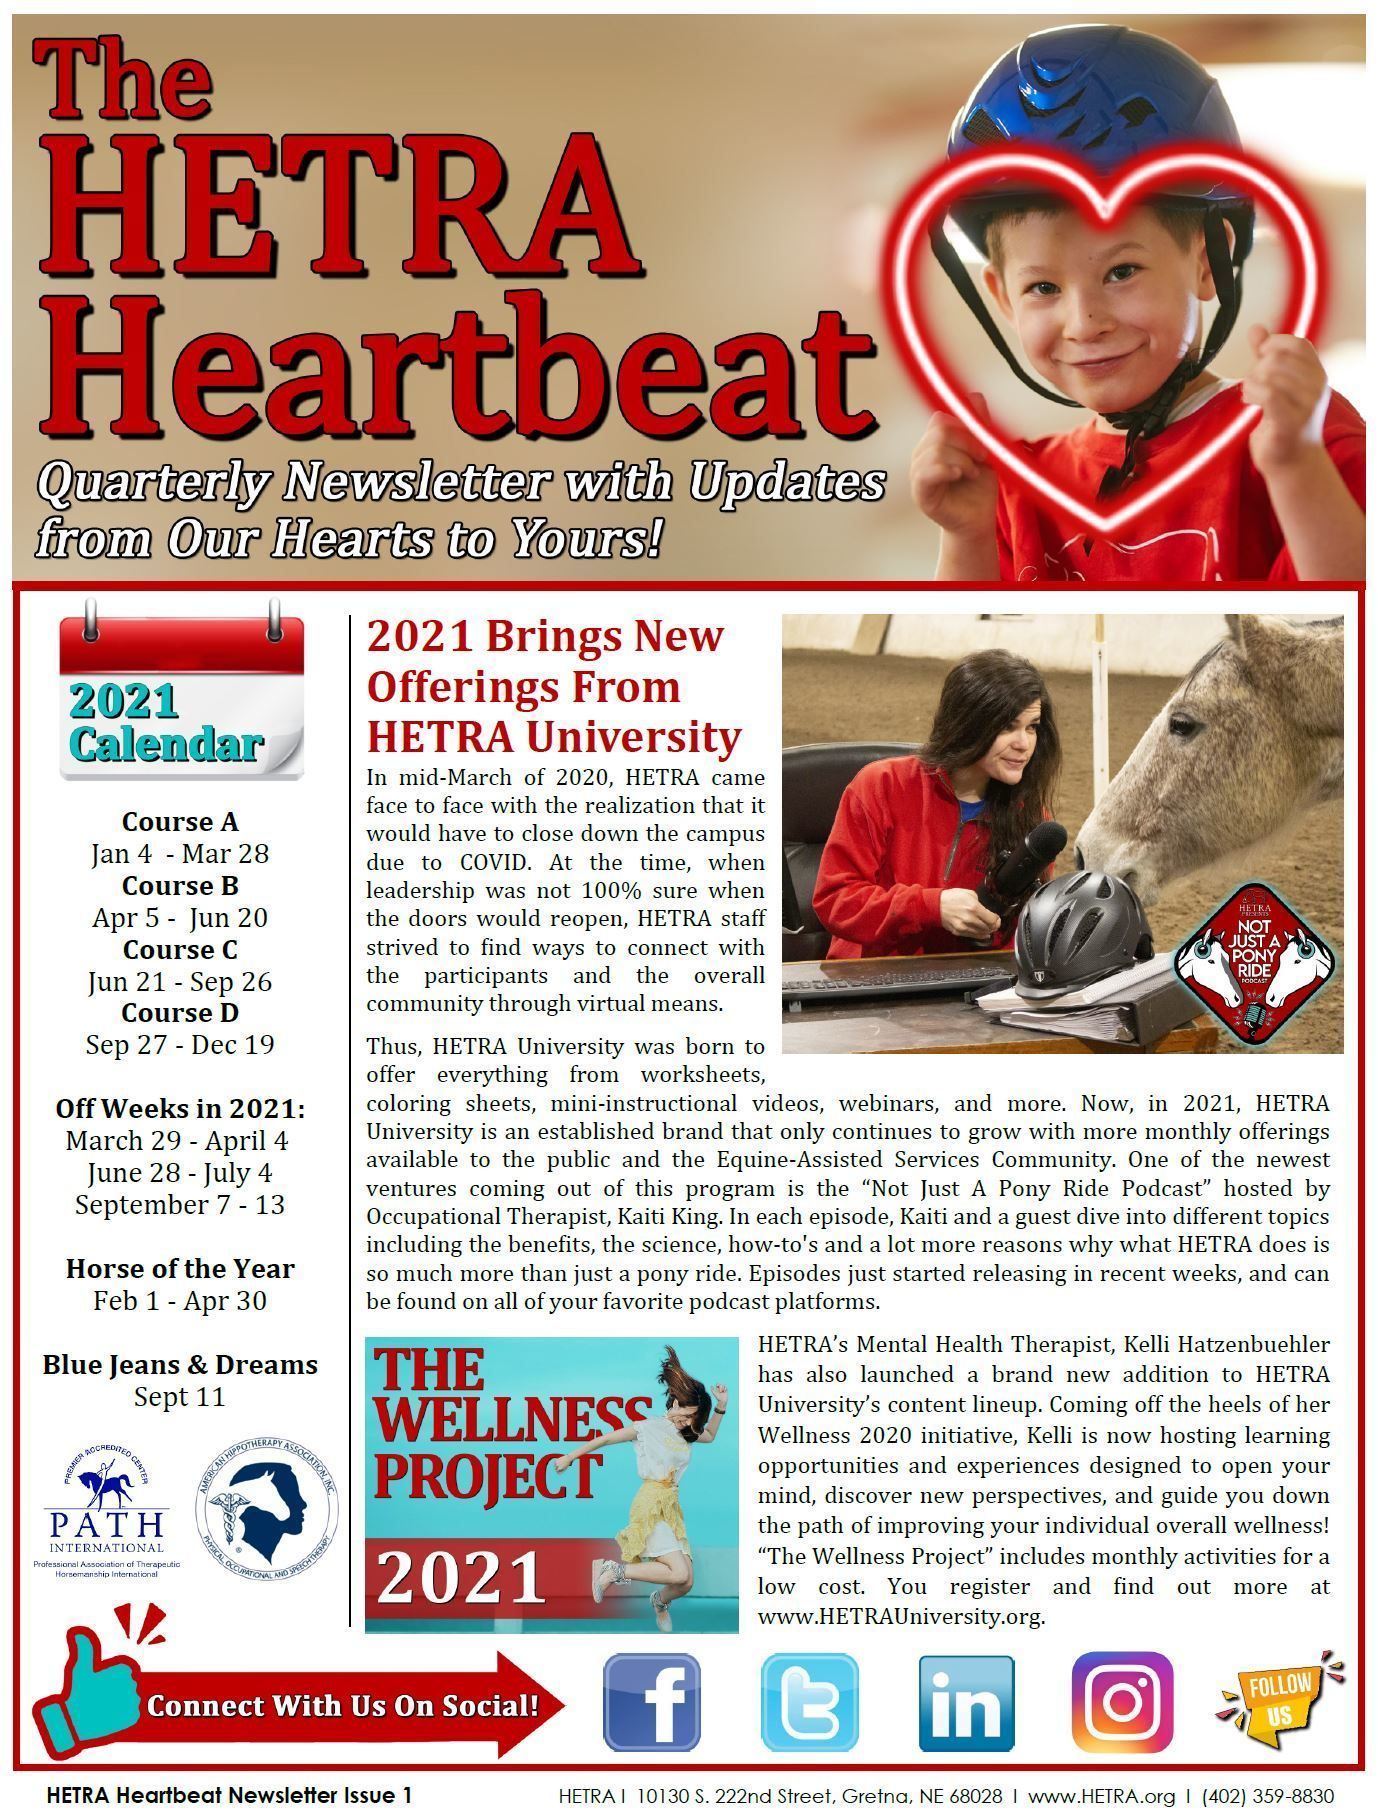 Heartbeat Issue #1 - Spring 2021